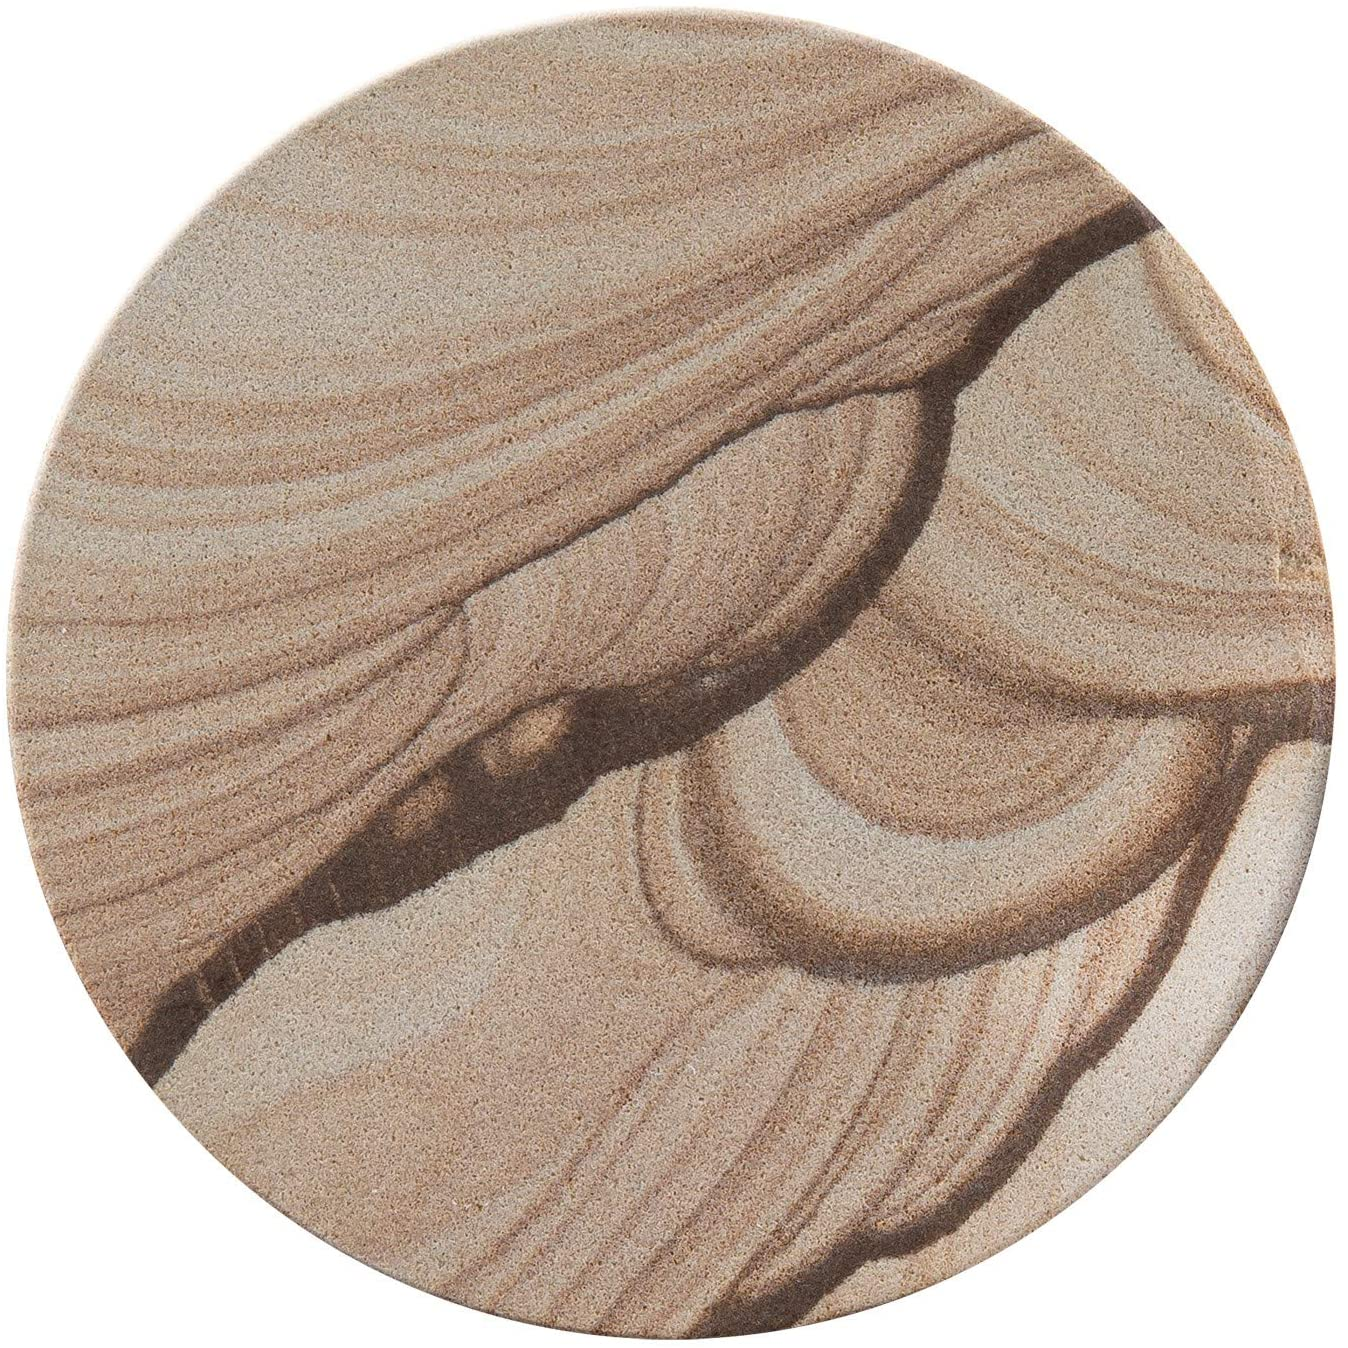 Thirstystone Brand - Desert Sand Coaster, Multicolor All Natural Sandstone - Durable Stone with Varying Patterns, Every Coaster Is An Original